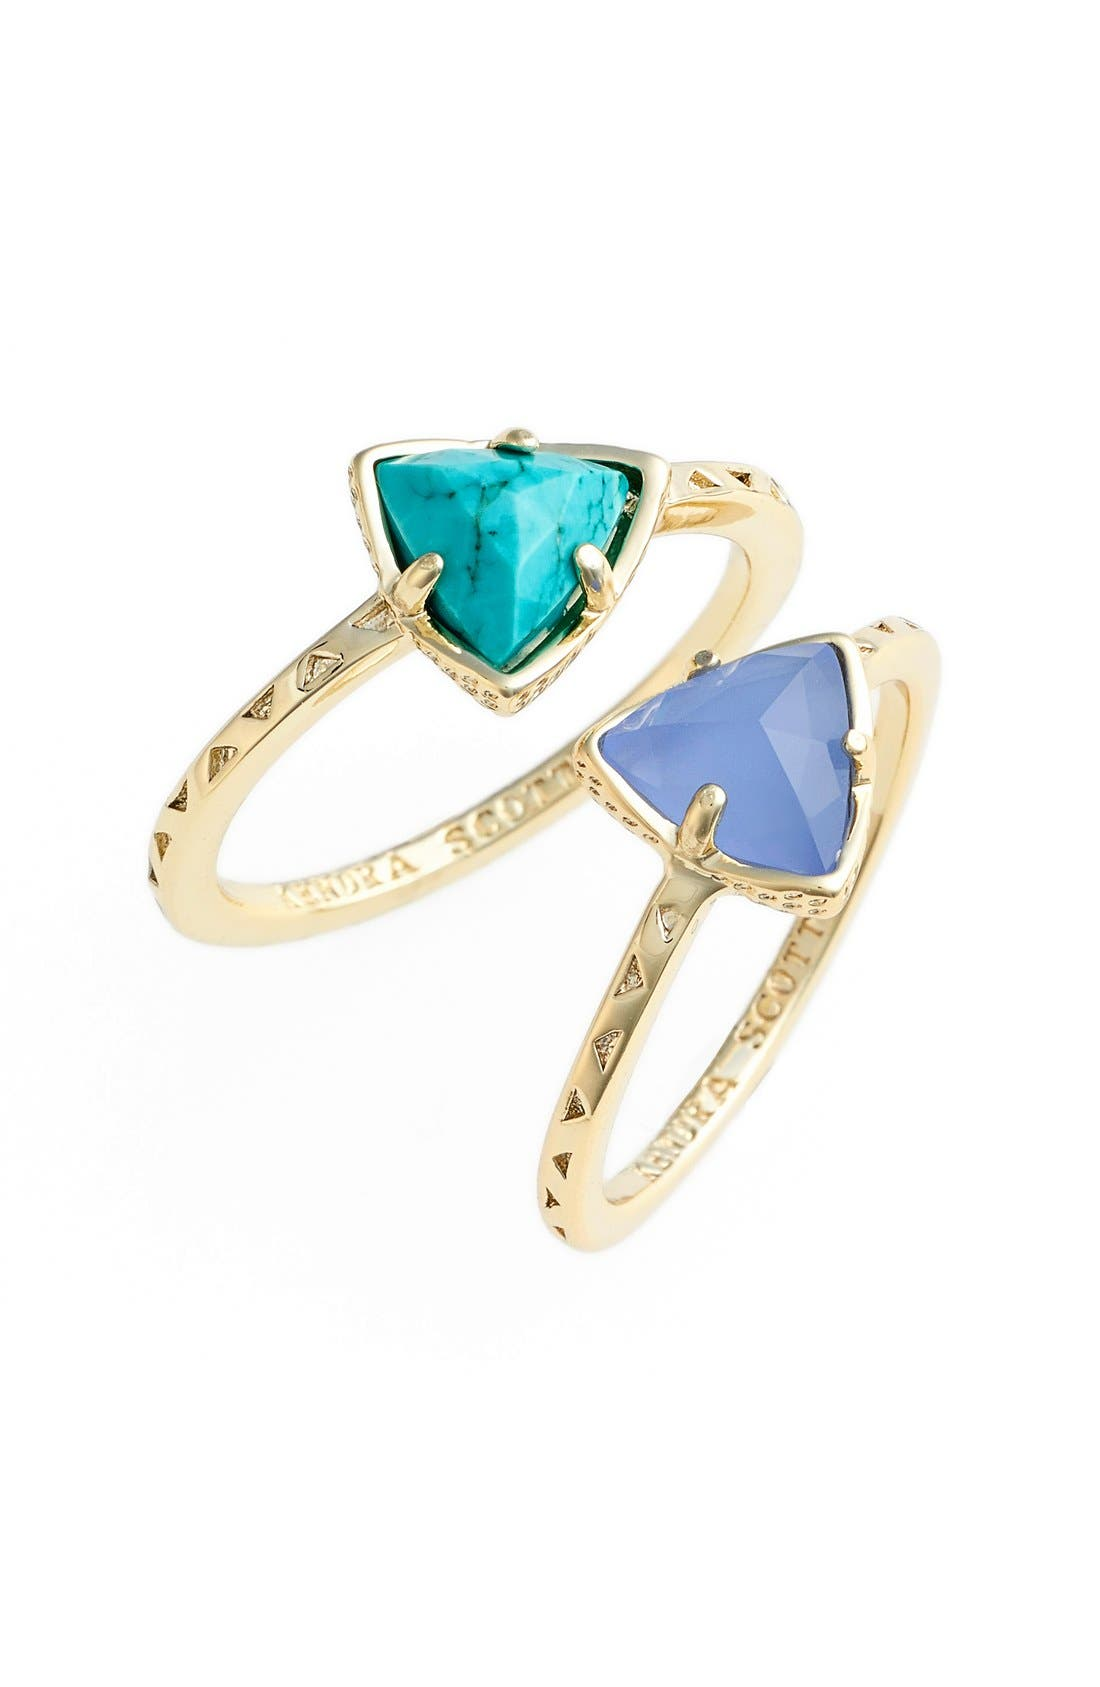 Alternate Image 1 Selected - Kendra Scott 'Anna' Triangle Rings (Set of 2)